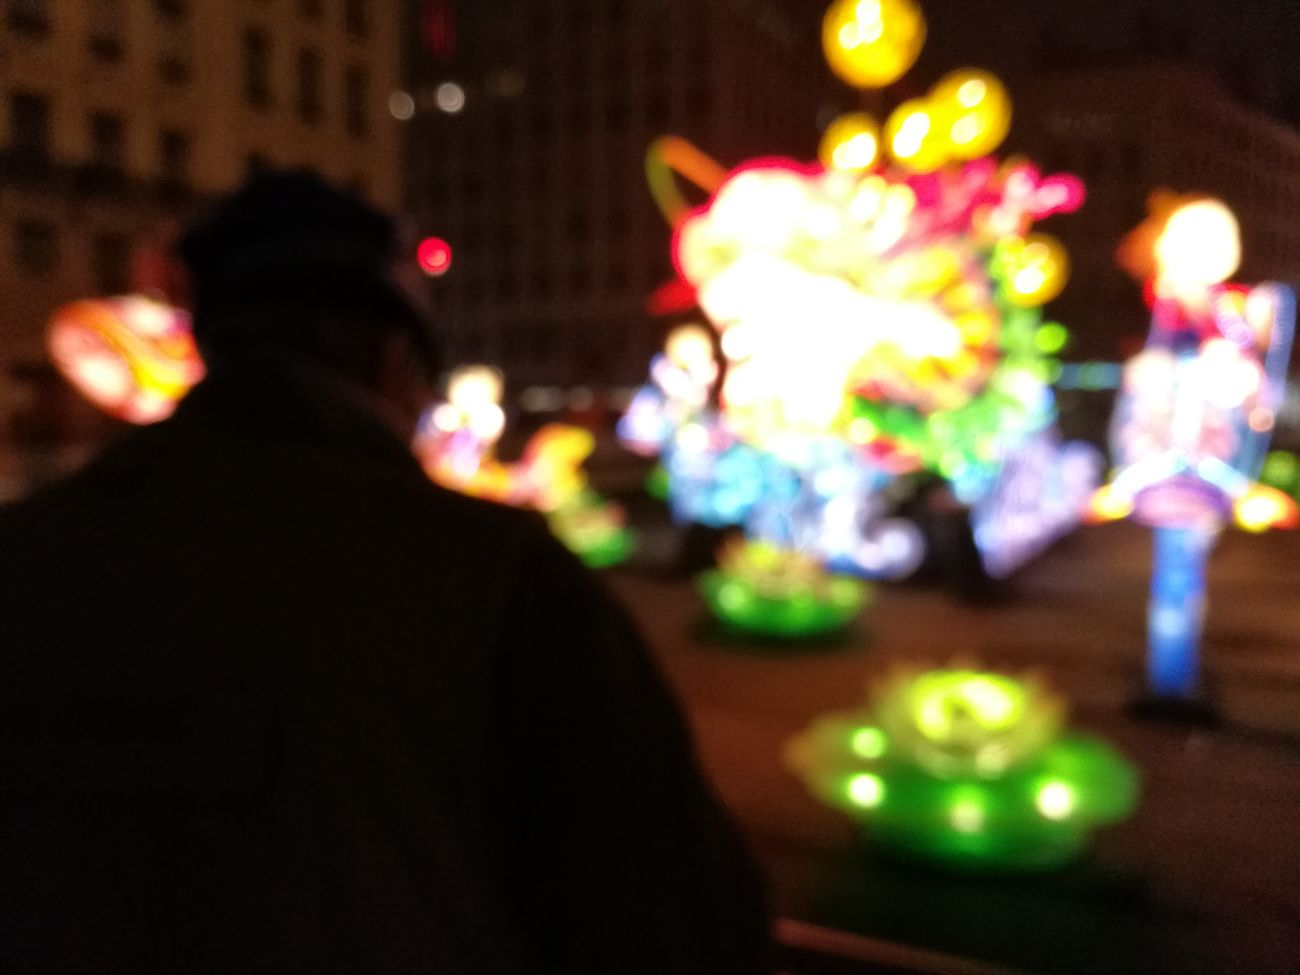 Fête des Lumières 🌌 Lost in lights Night Illuminated Rear View Nightlife Leisure Activity Real People People One Person Neon Lights Mycity Famous Tourist Attractions Lyon Fete Des Lumieres Architecture Amazing Party Party Time Event Chinese Celebration Technology Outdoors Large Group Of People